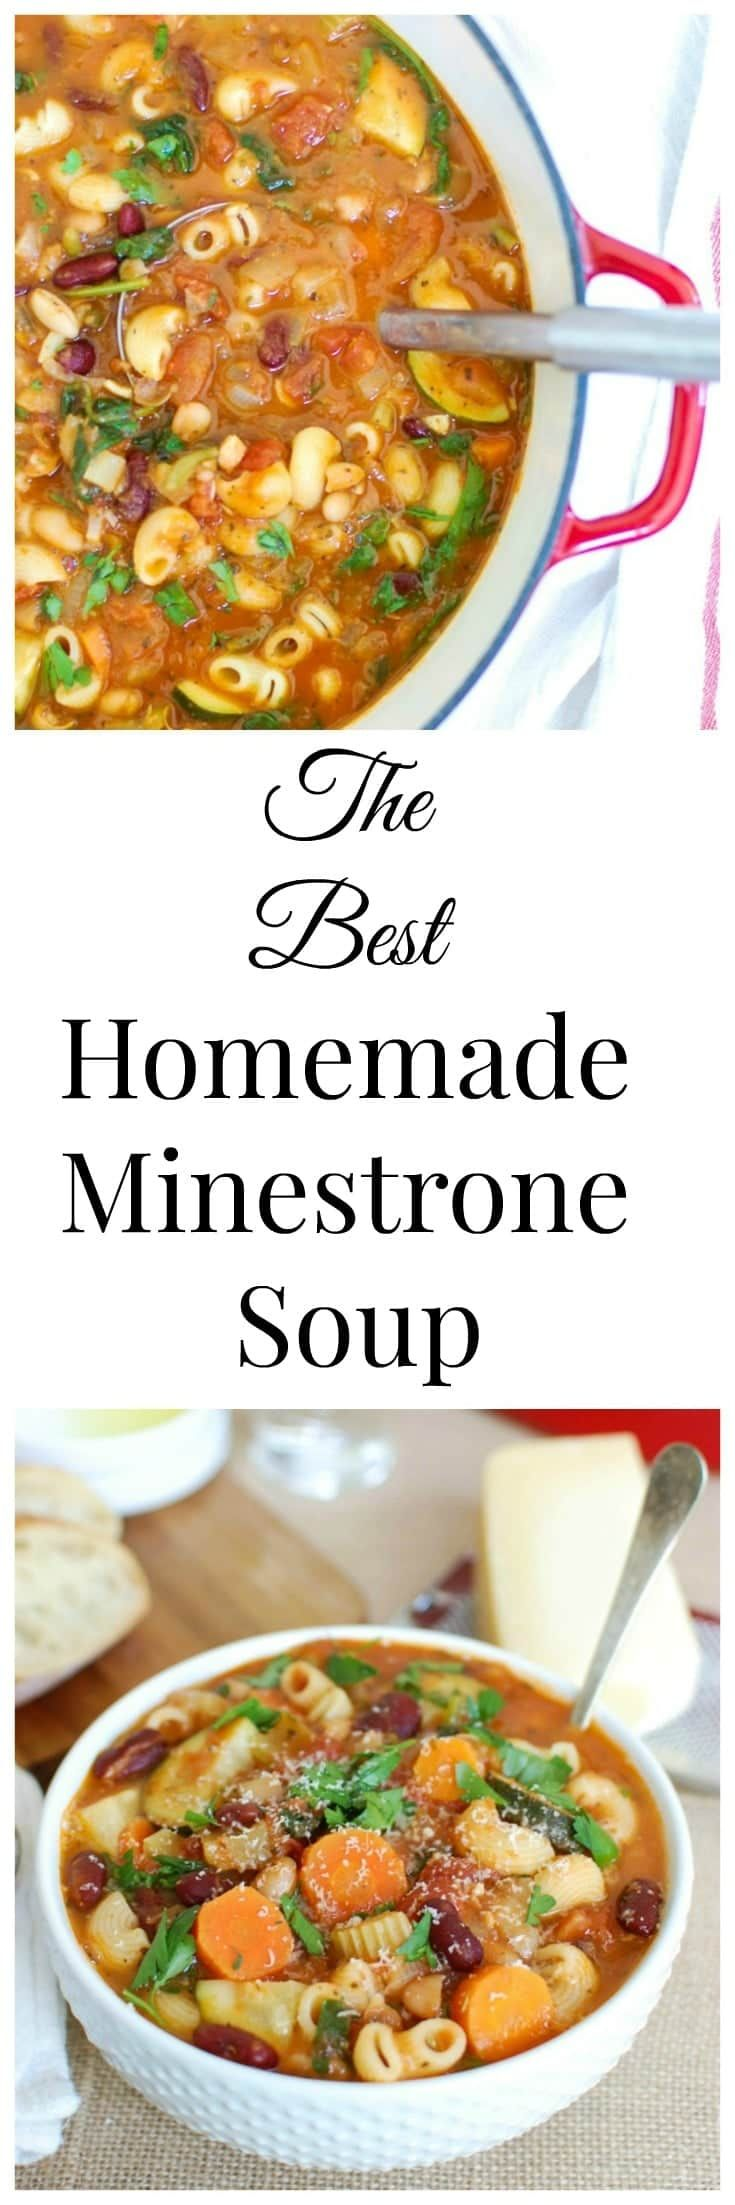 Homemade Minestrone Soup Recipe - the best